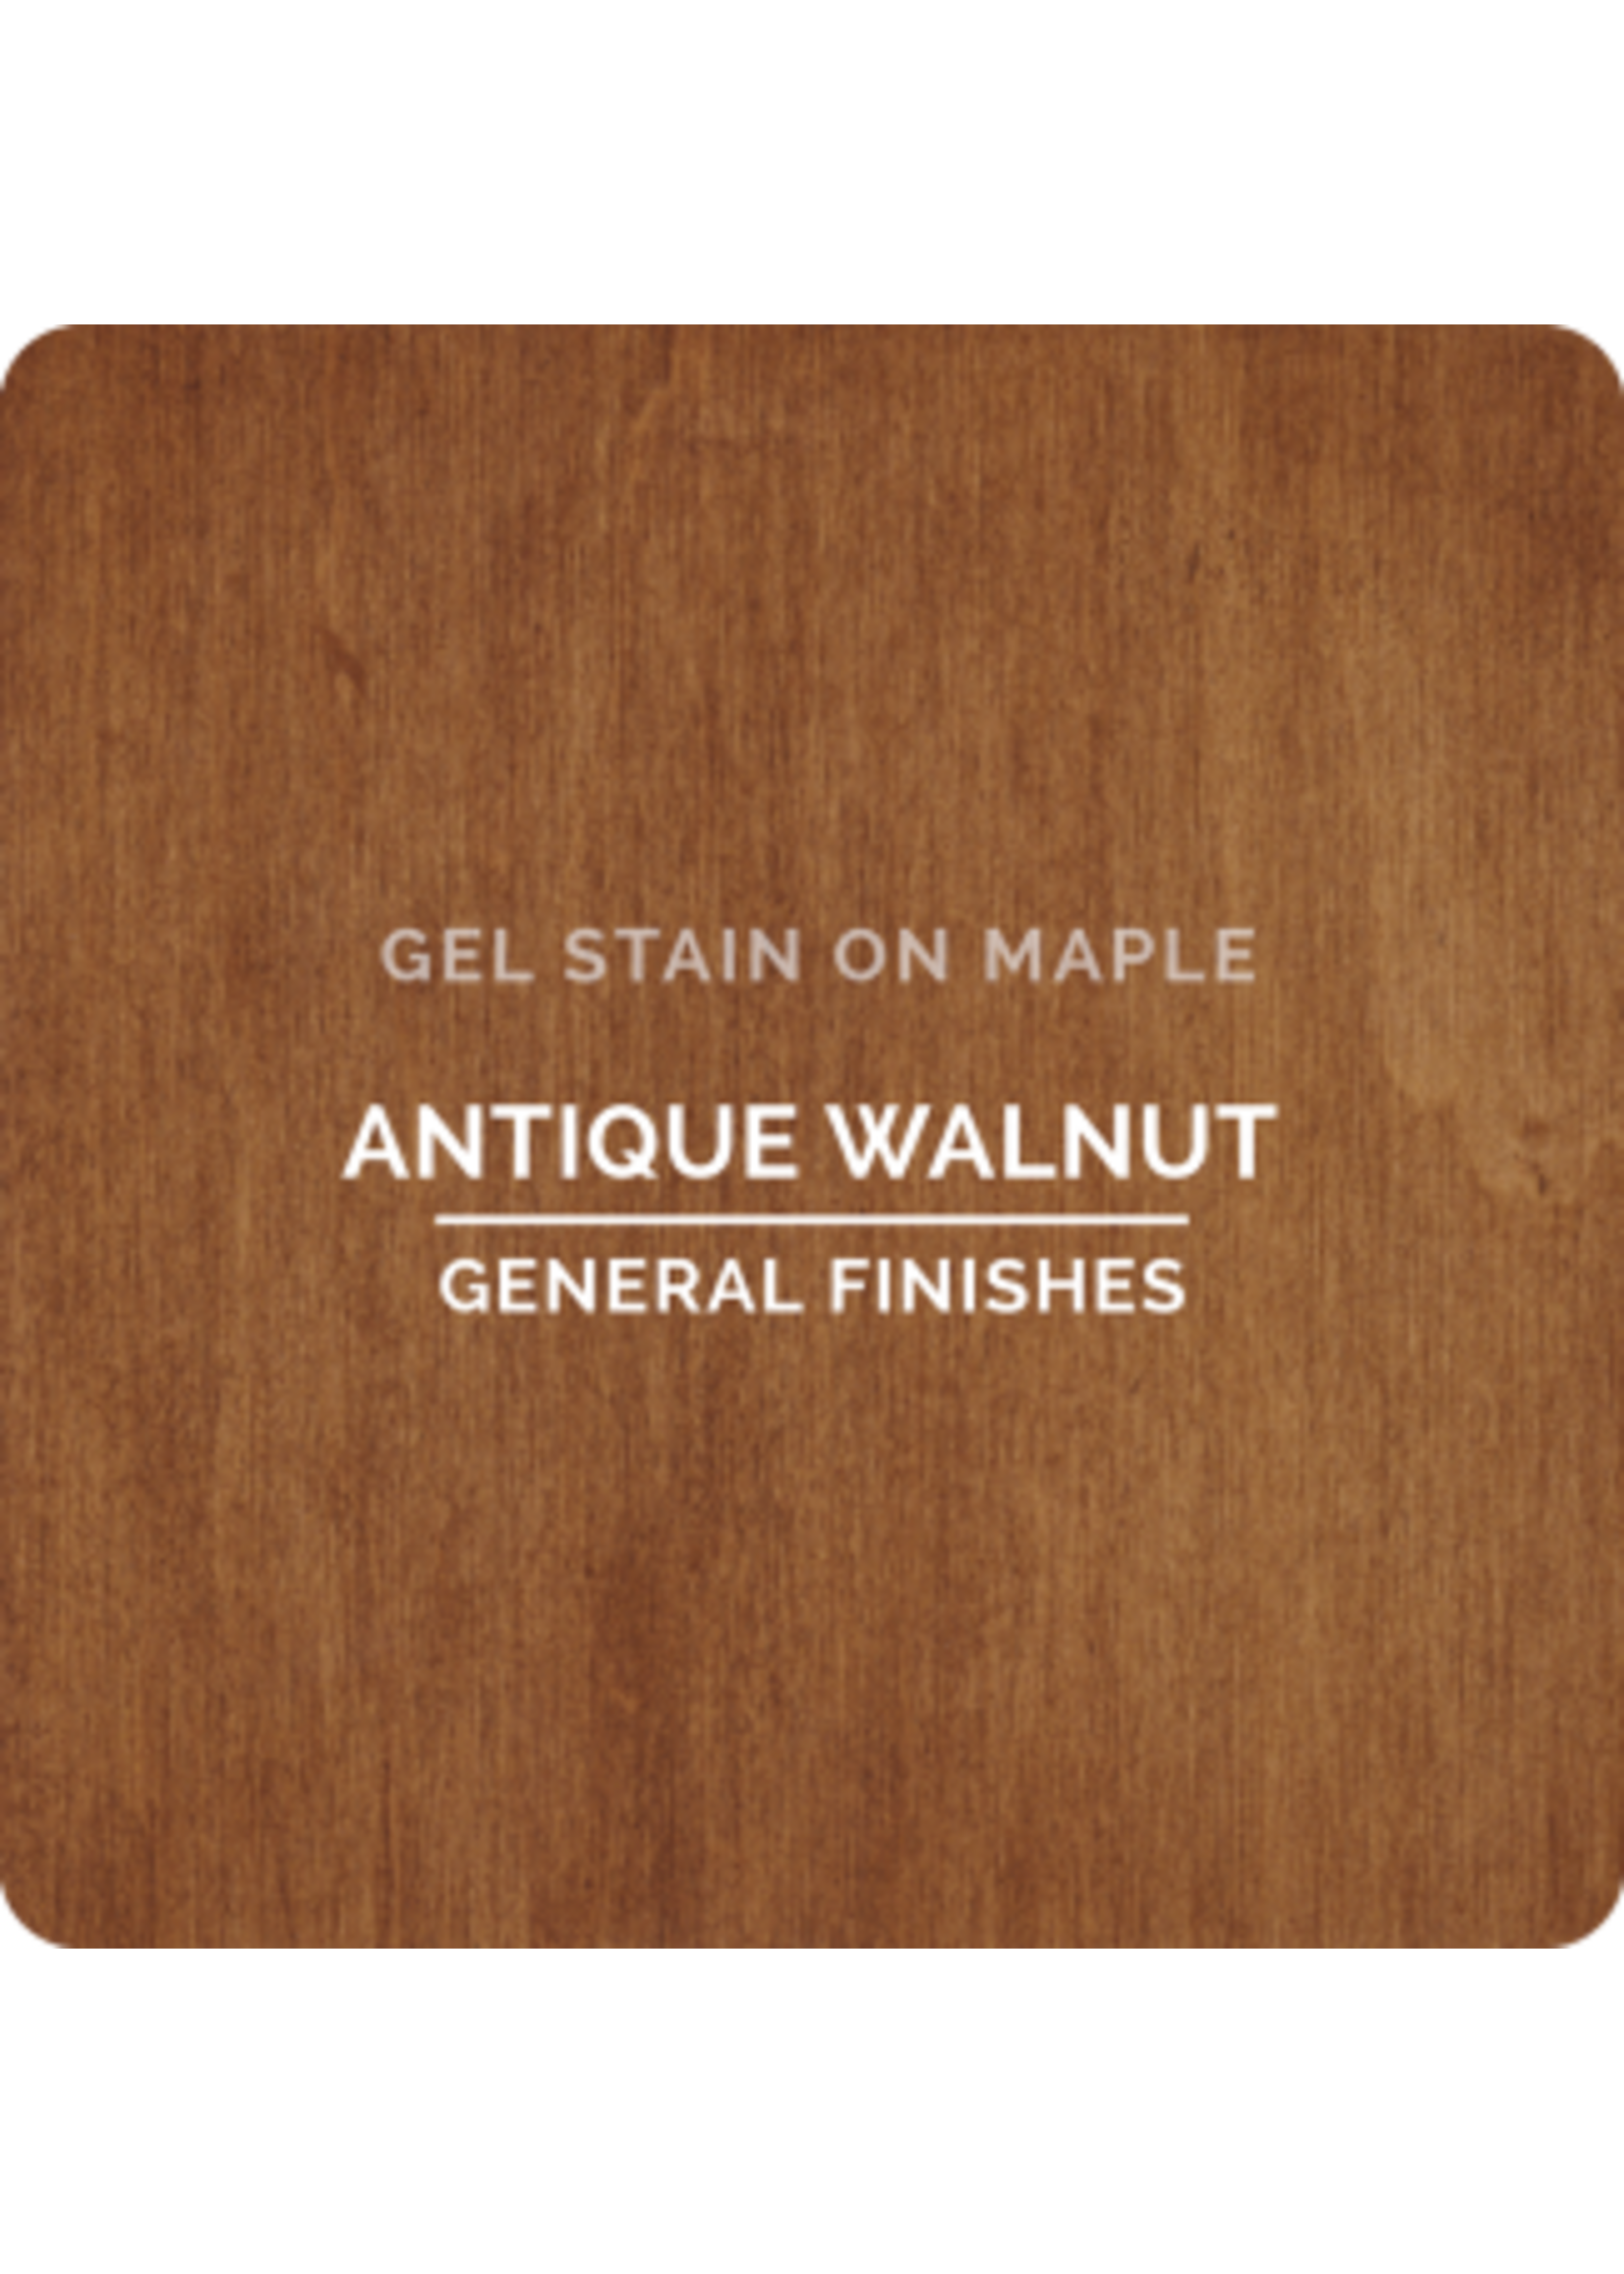 General Finishes Antique Walnut General Finishes Gel Stain